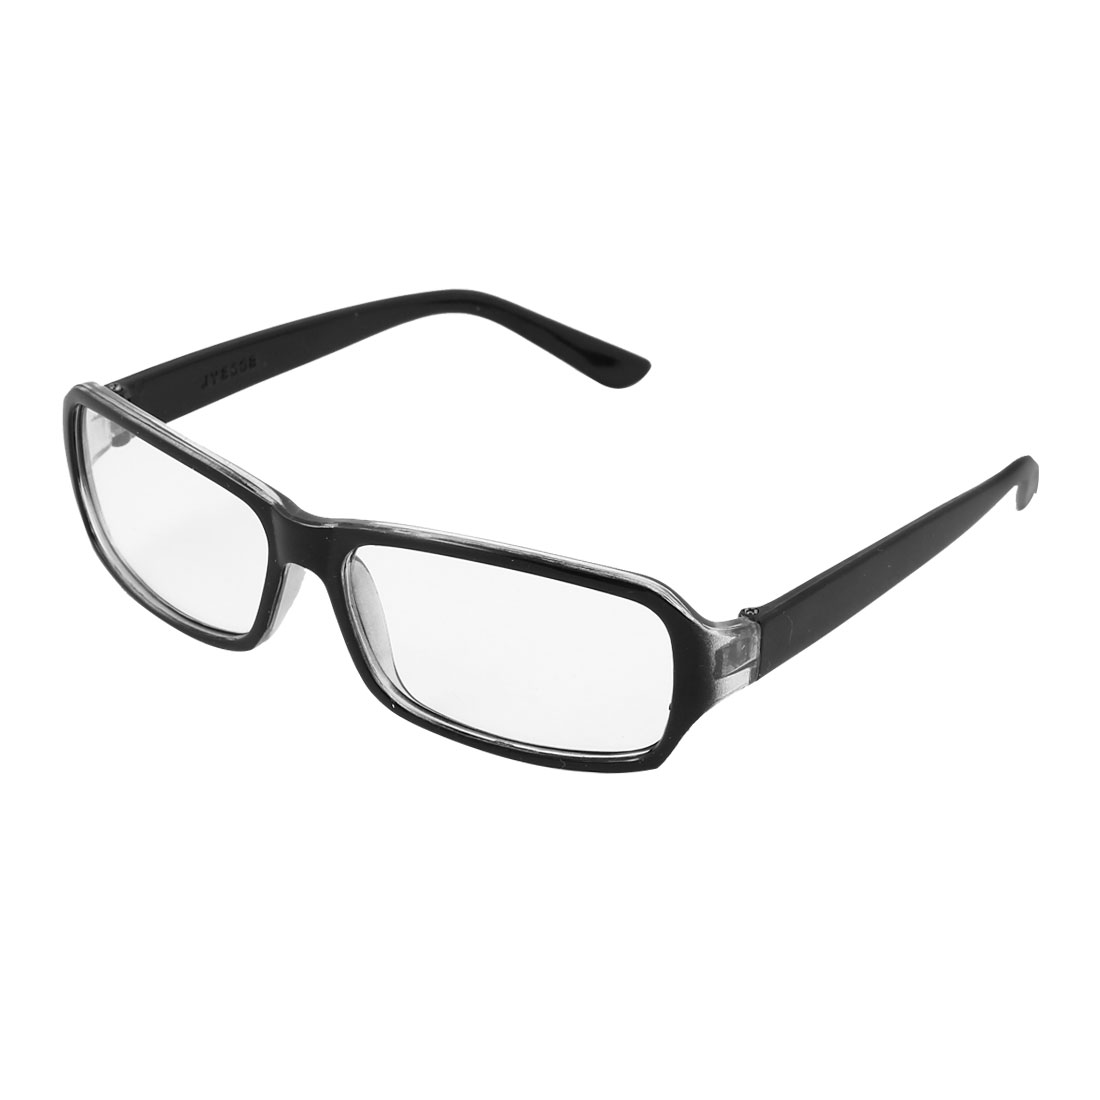 Lady Black Plastic Full Rimless Single Bridge Plain Eyewear Eyeglasses